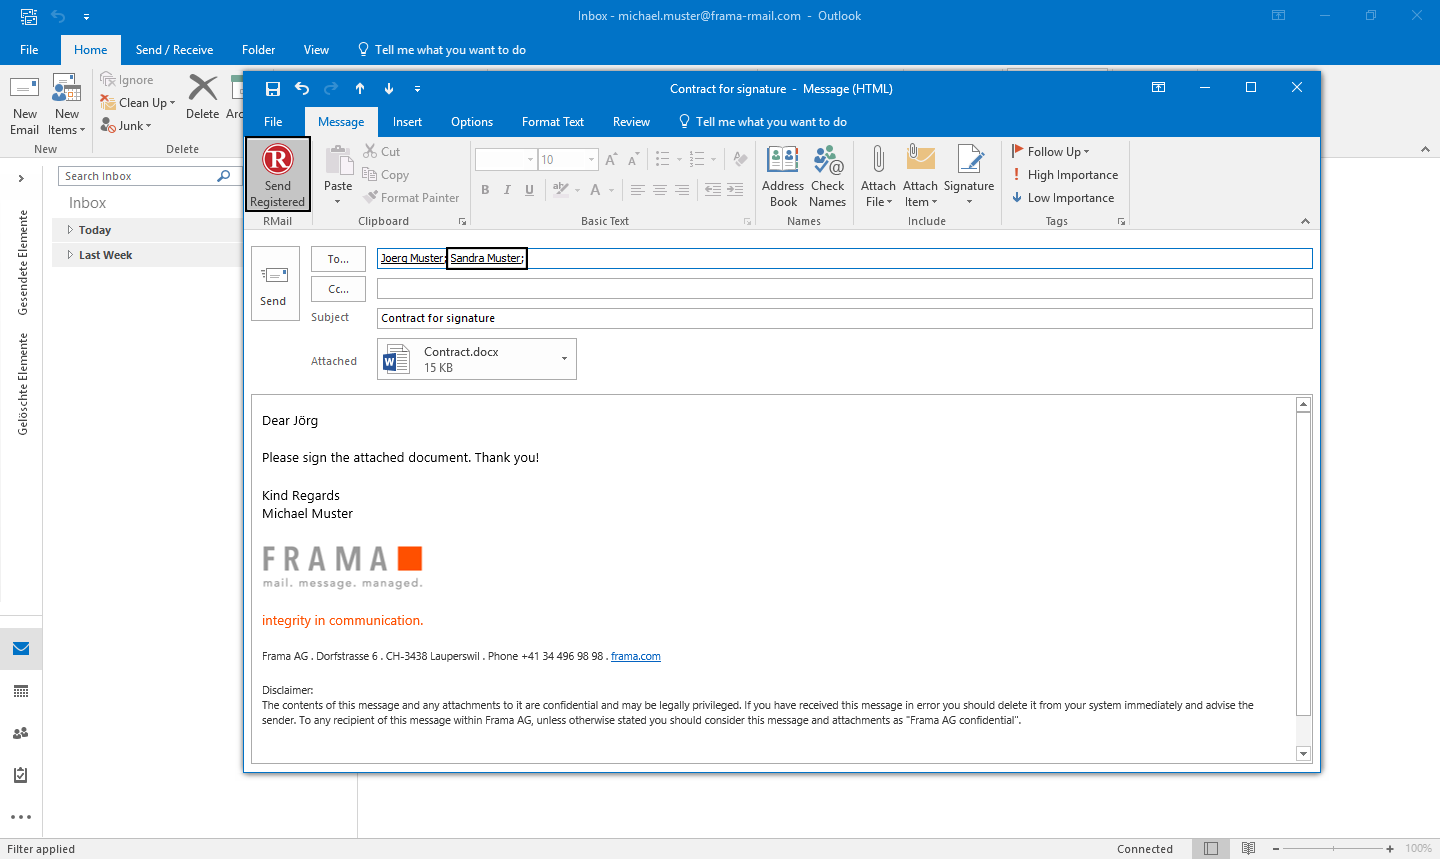 RMail for Outlook sign documents electronically - Step 2